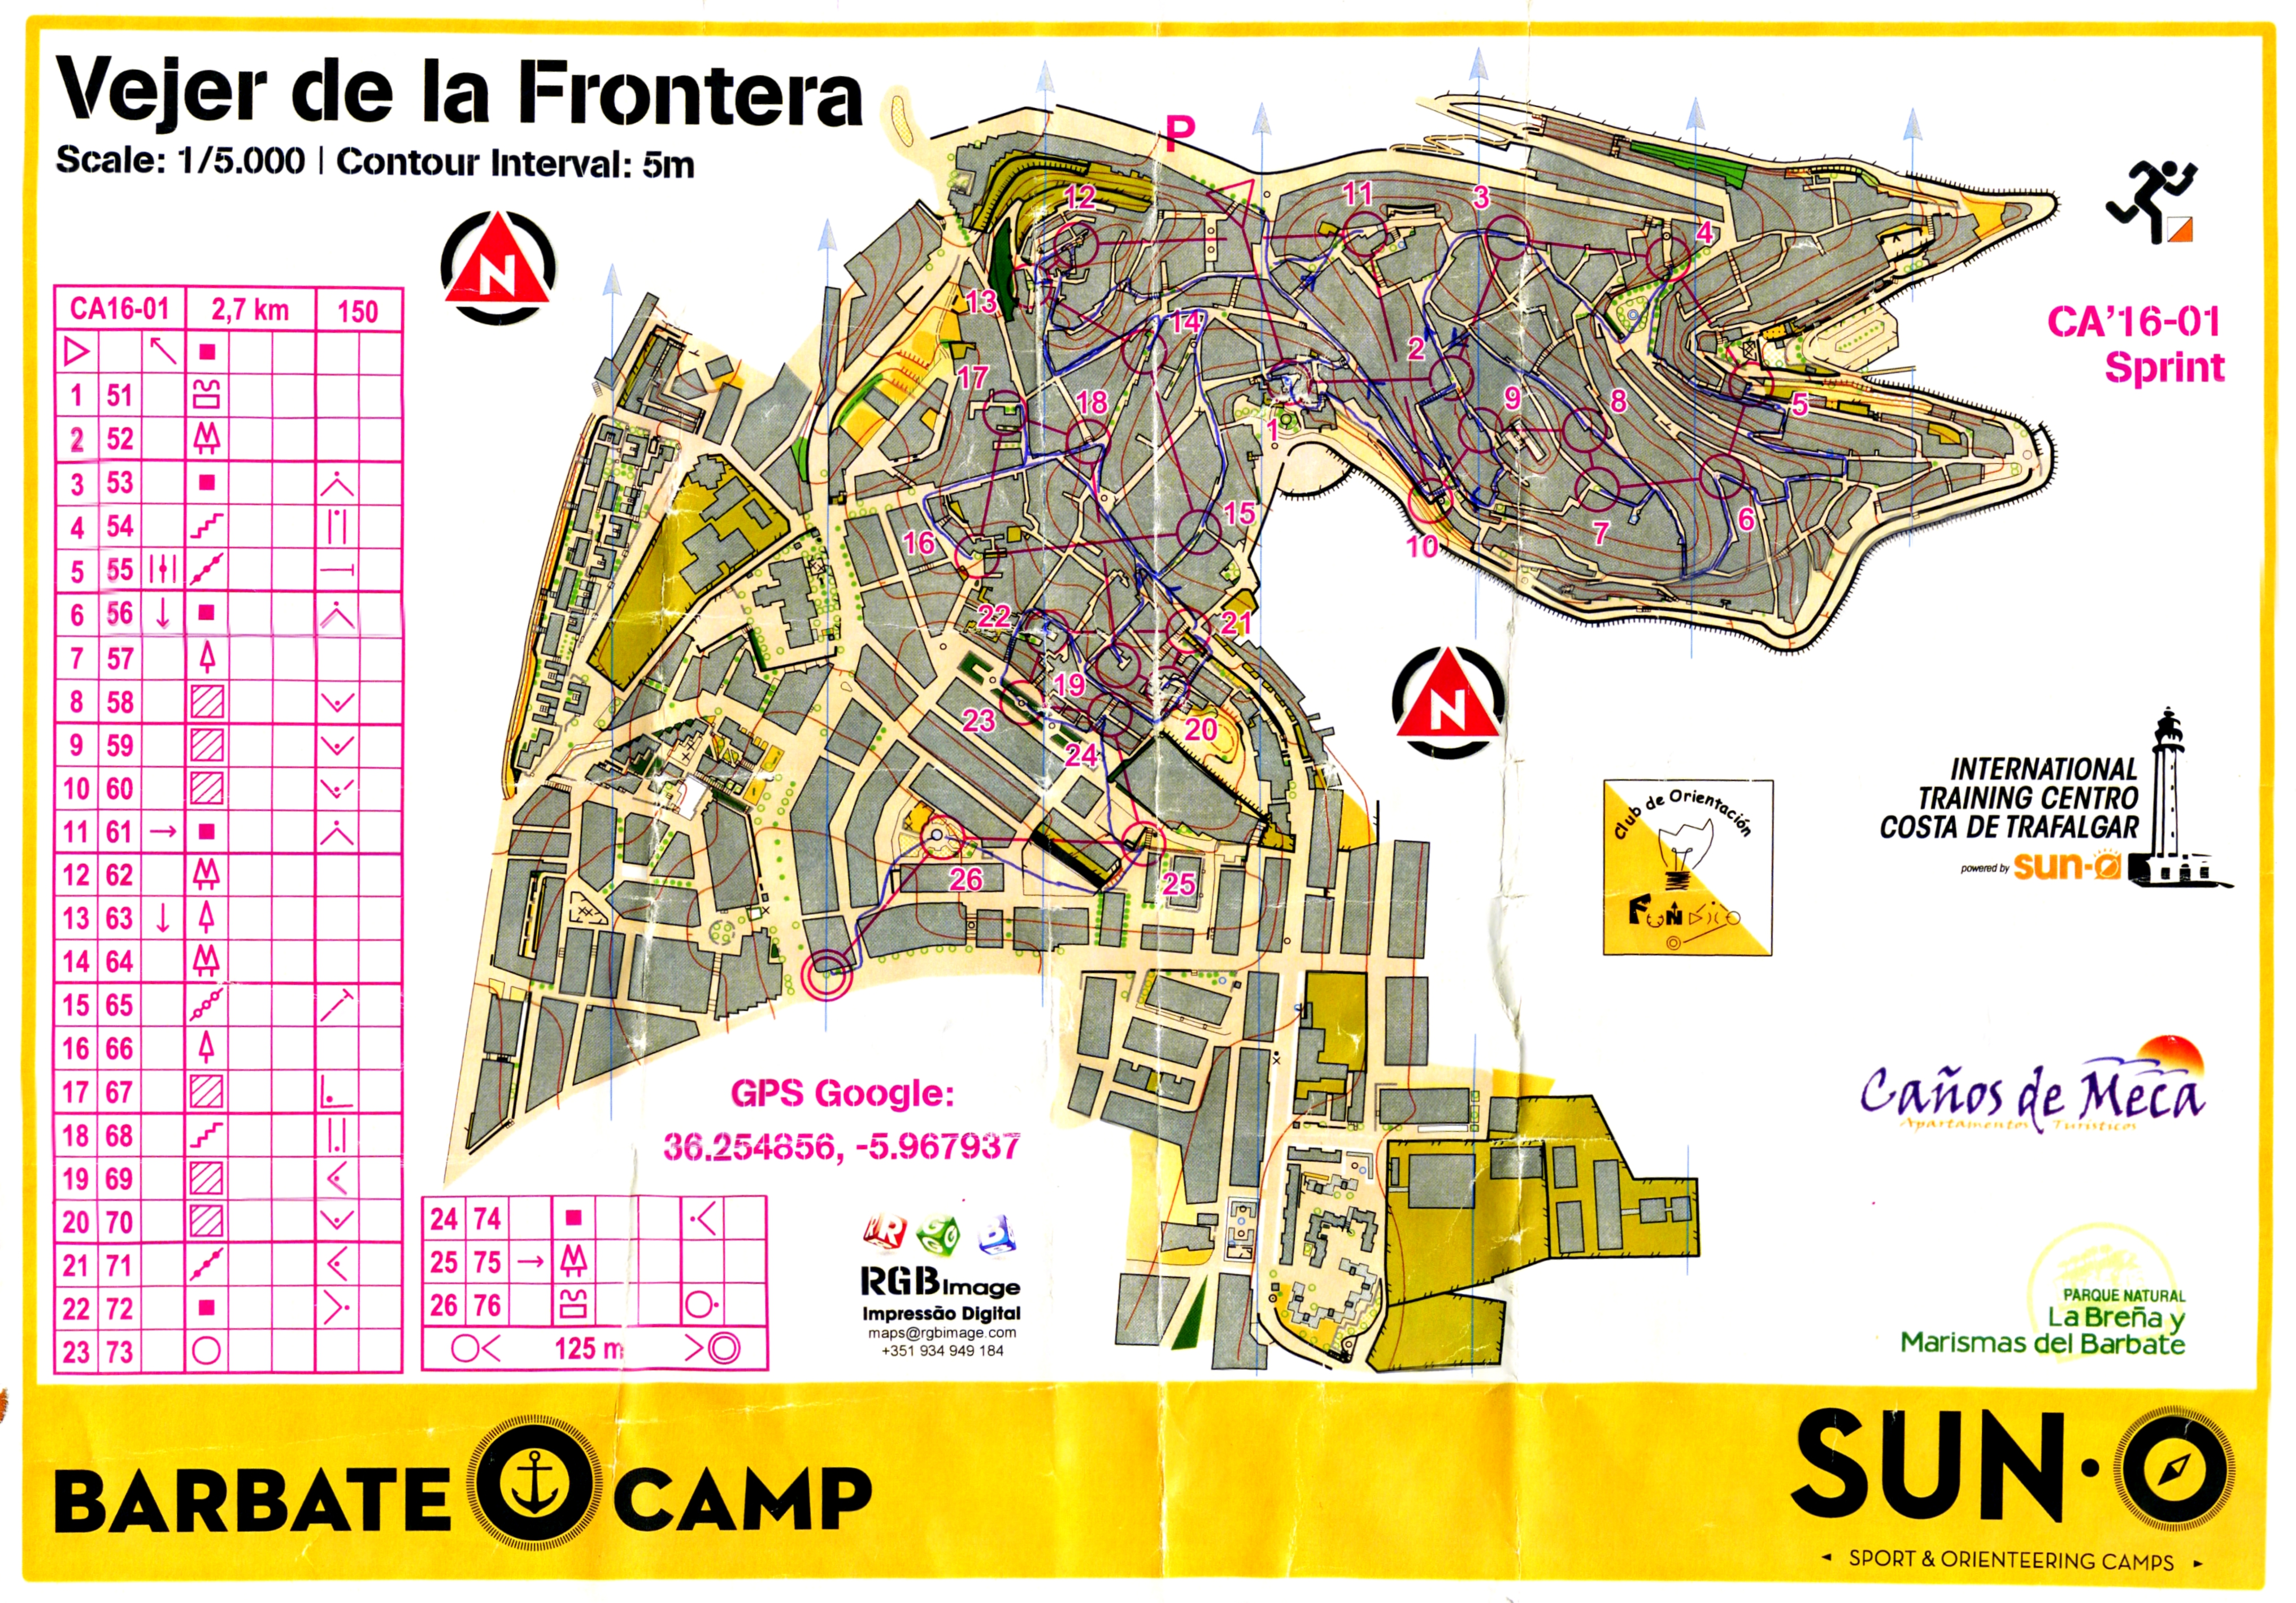 Camp Barbate_7 Sprint 1 (29.02.2016)